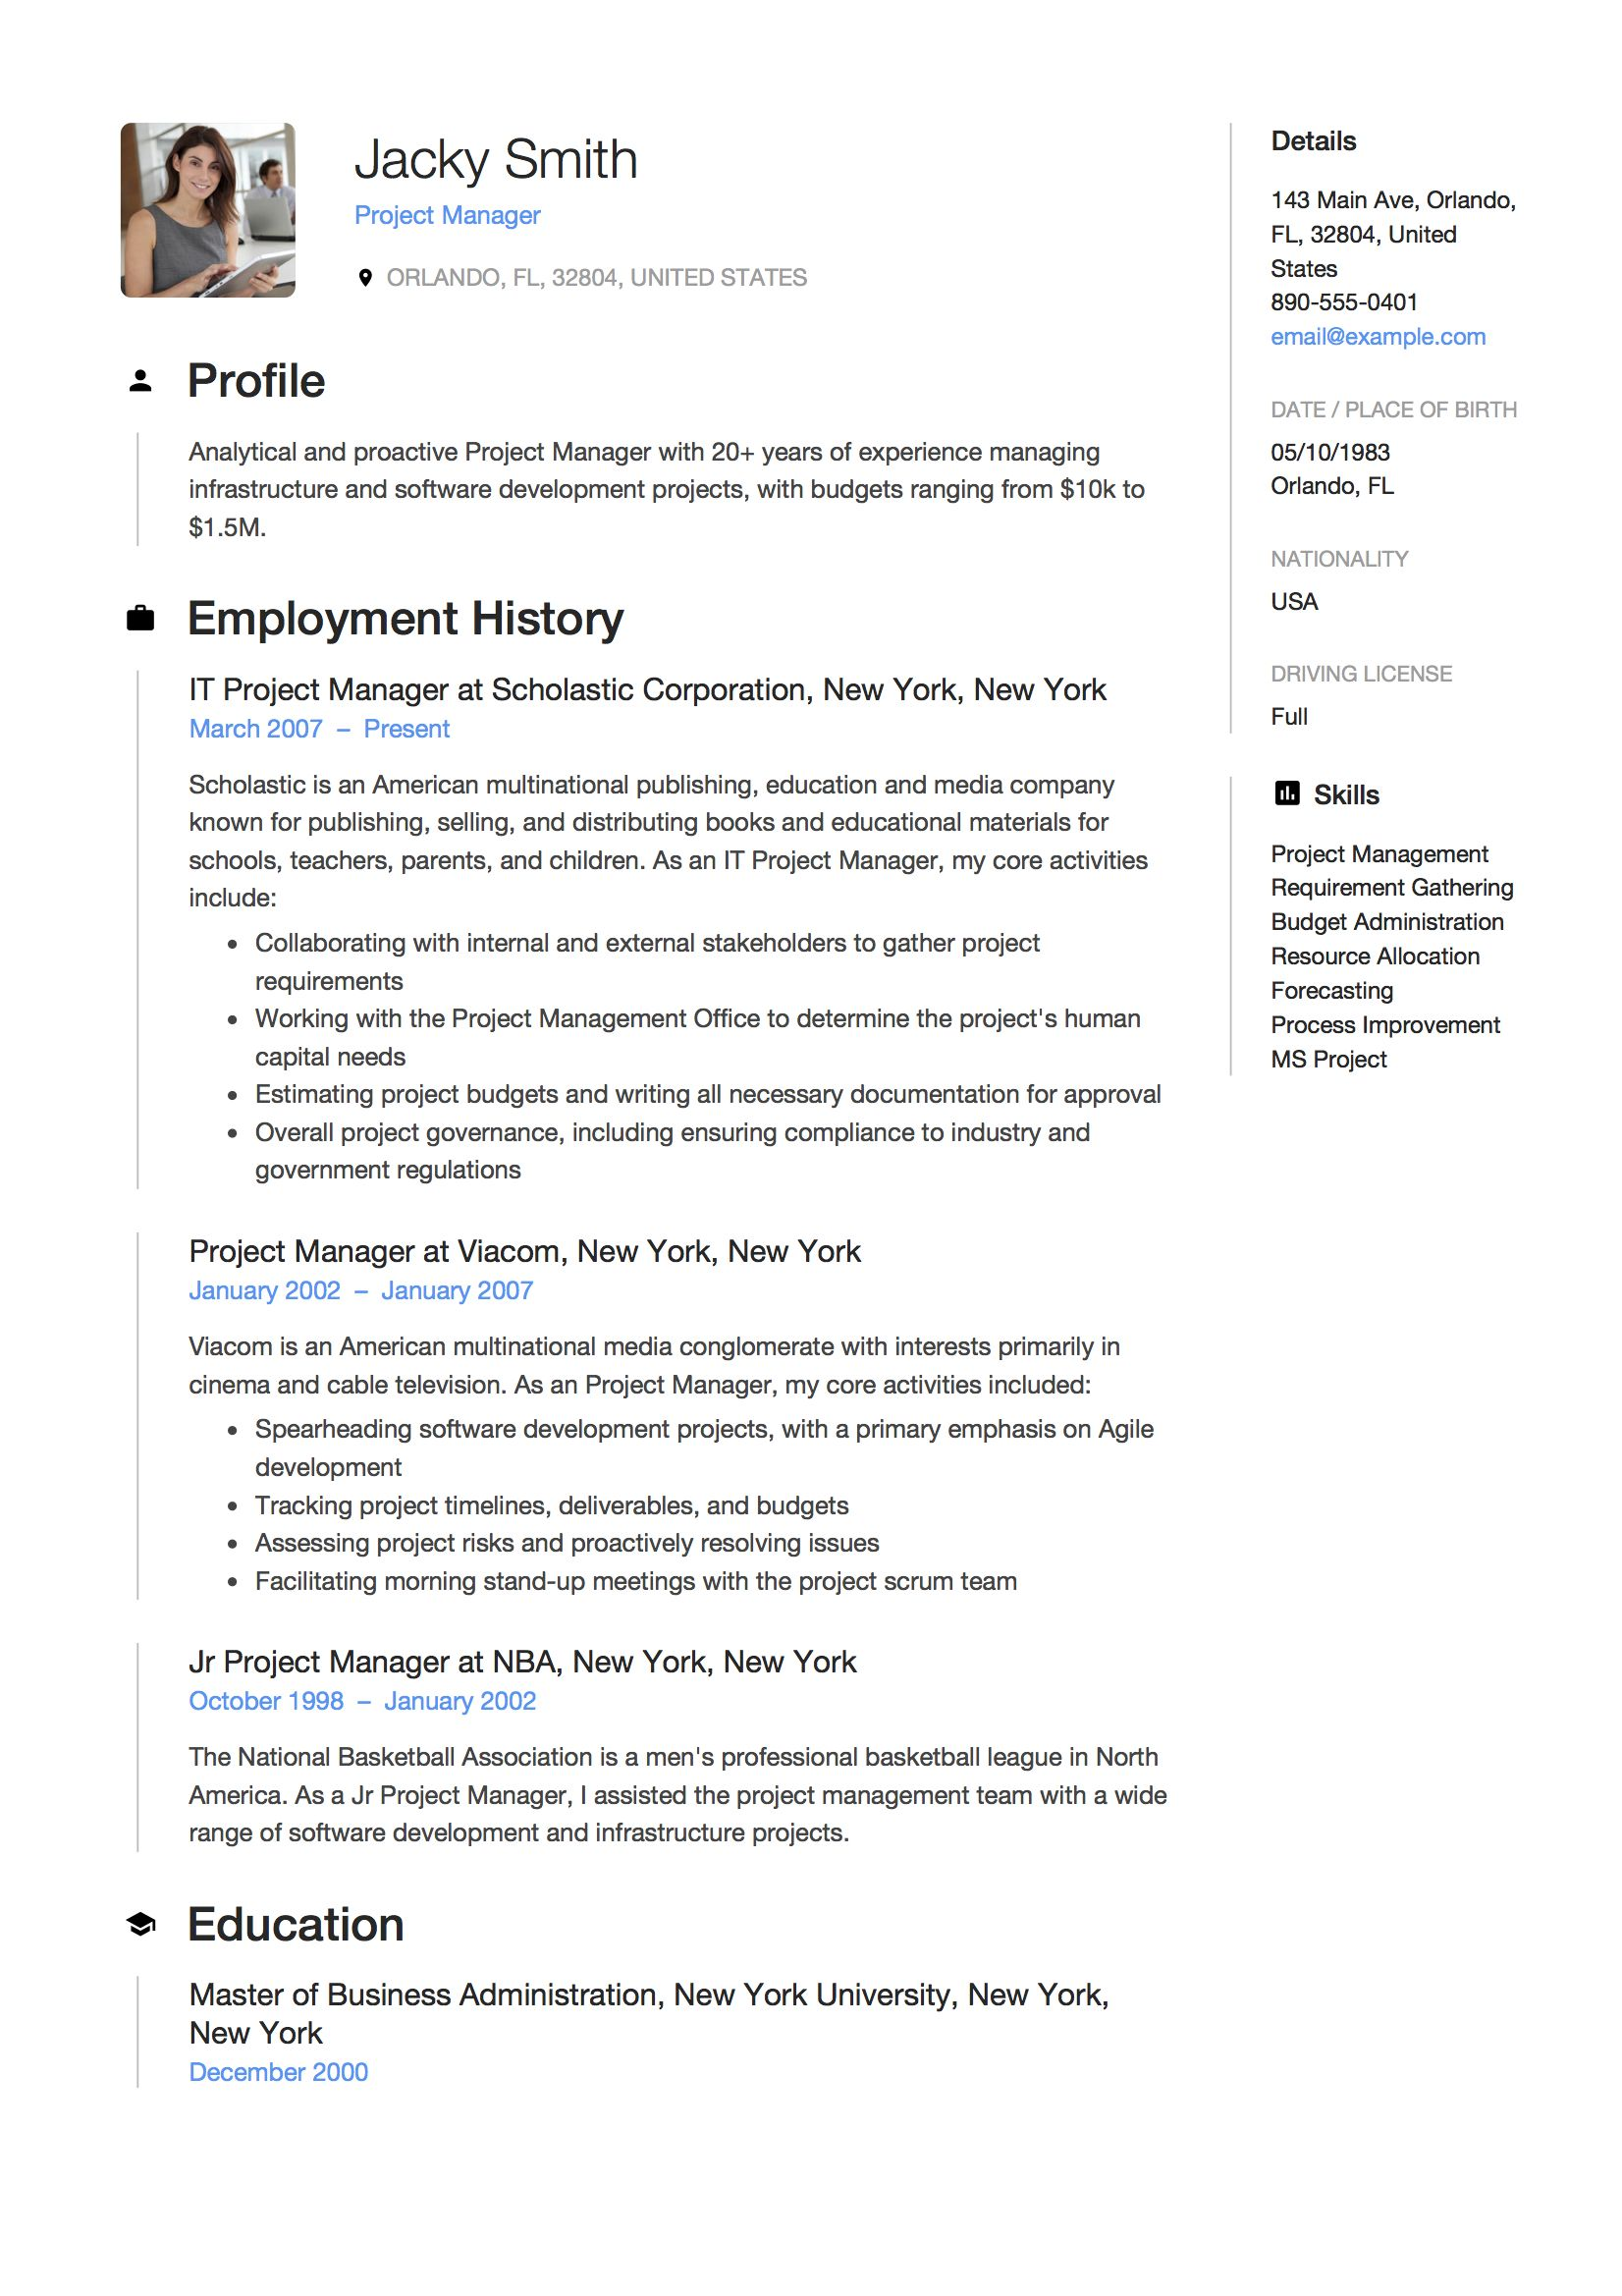 Resume Templates Pdf Project Manager Resume Job Resume Examples Manager Resume